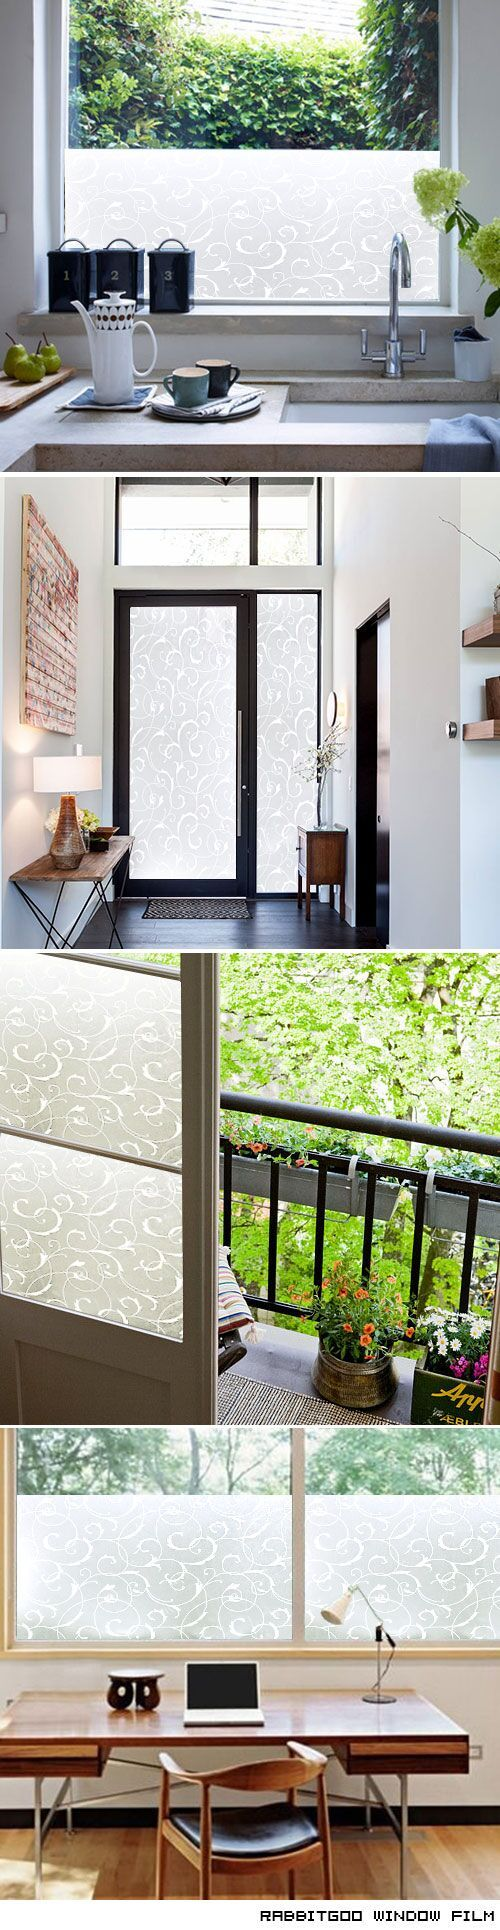 Best Window Treatment Images On Pinterest Window Treatments - Window clings for home privacy